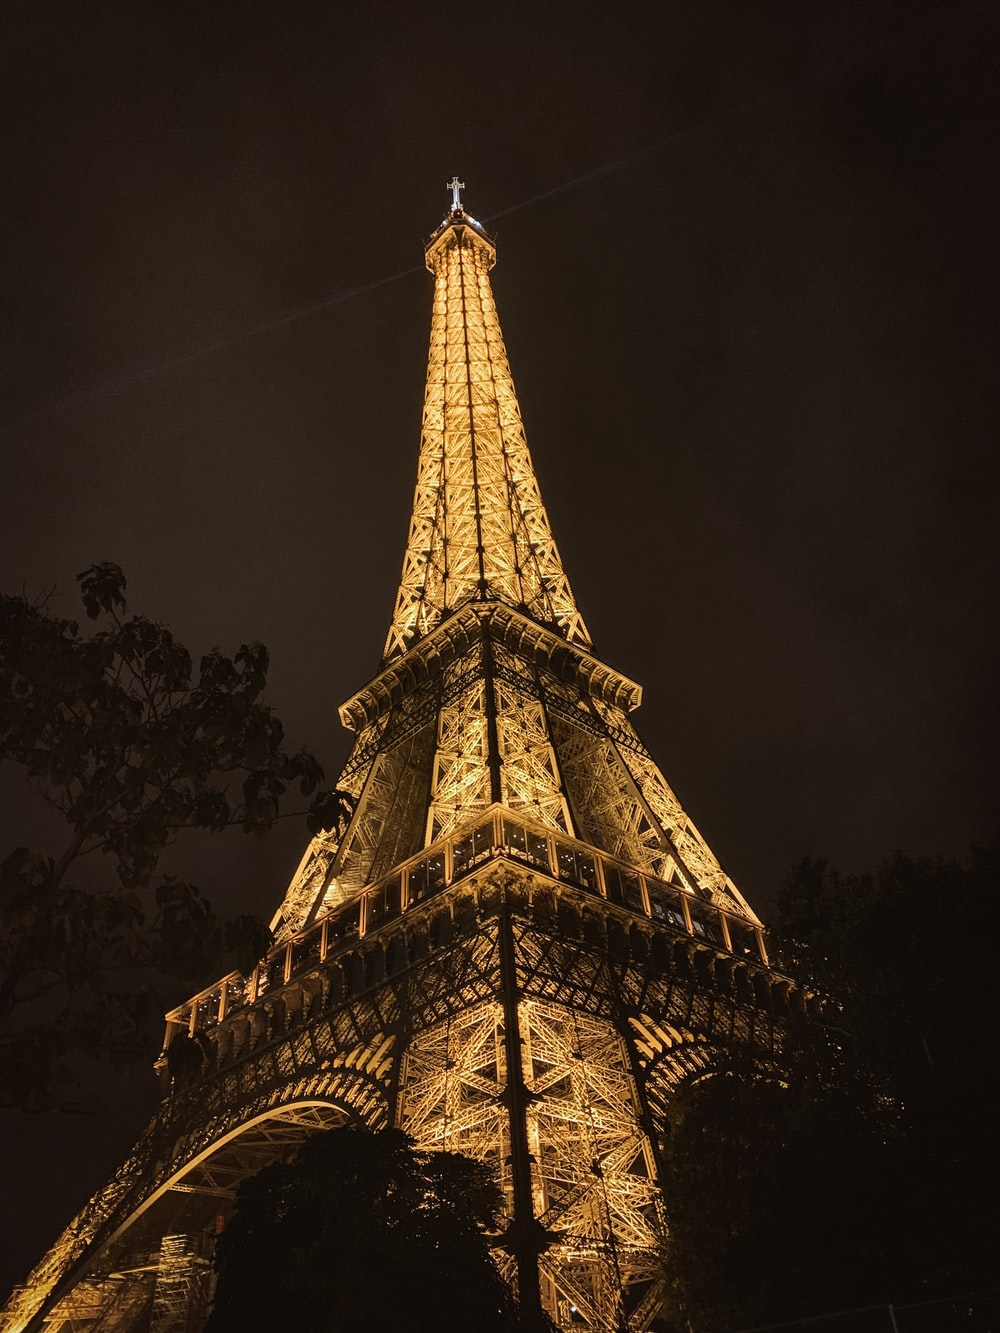 lighted Eiffel tower during nighttime